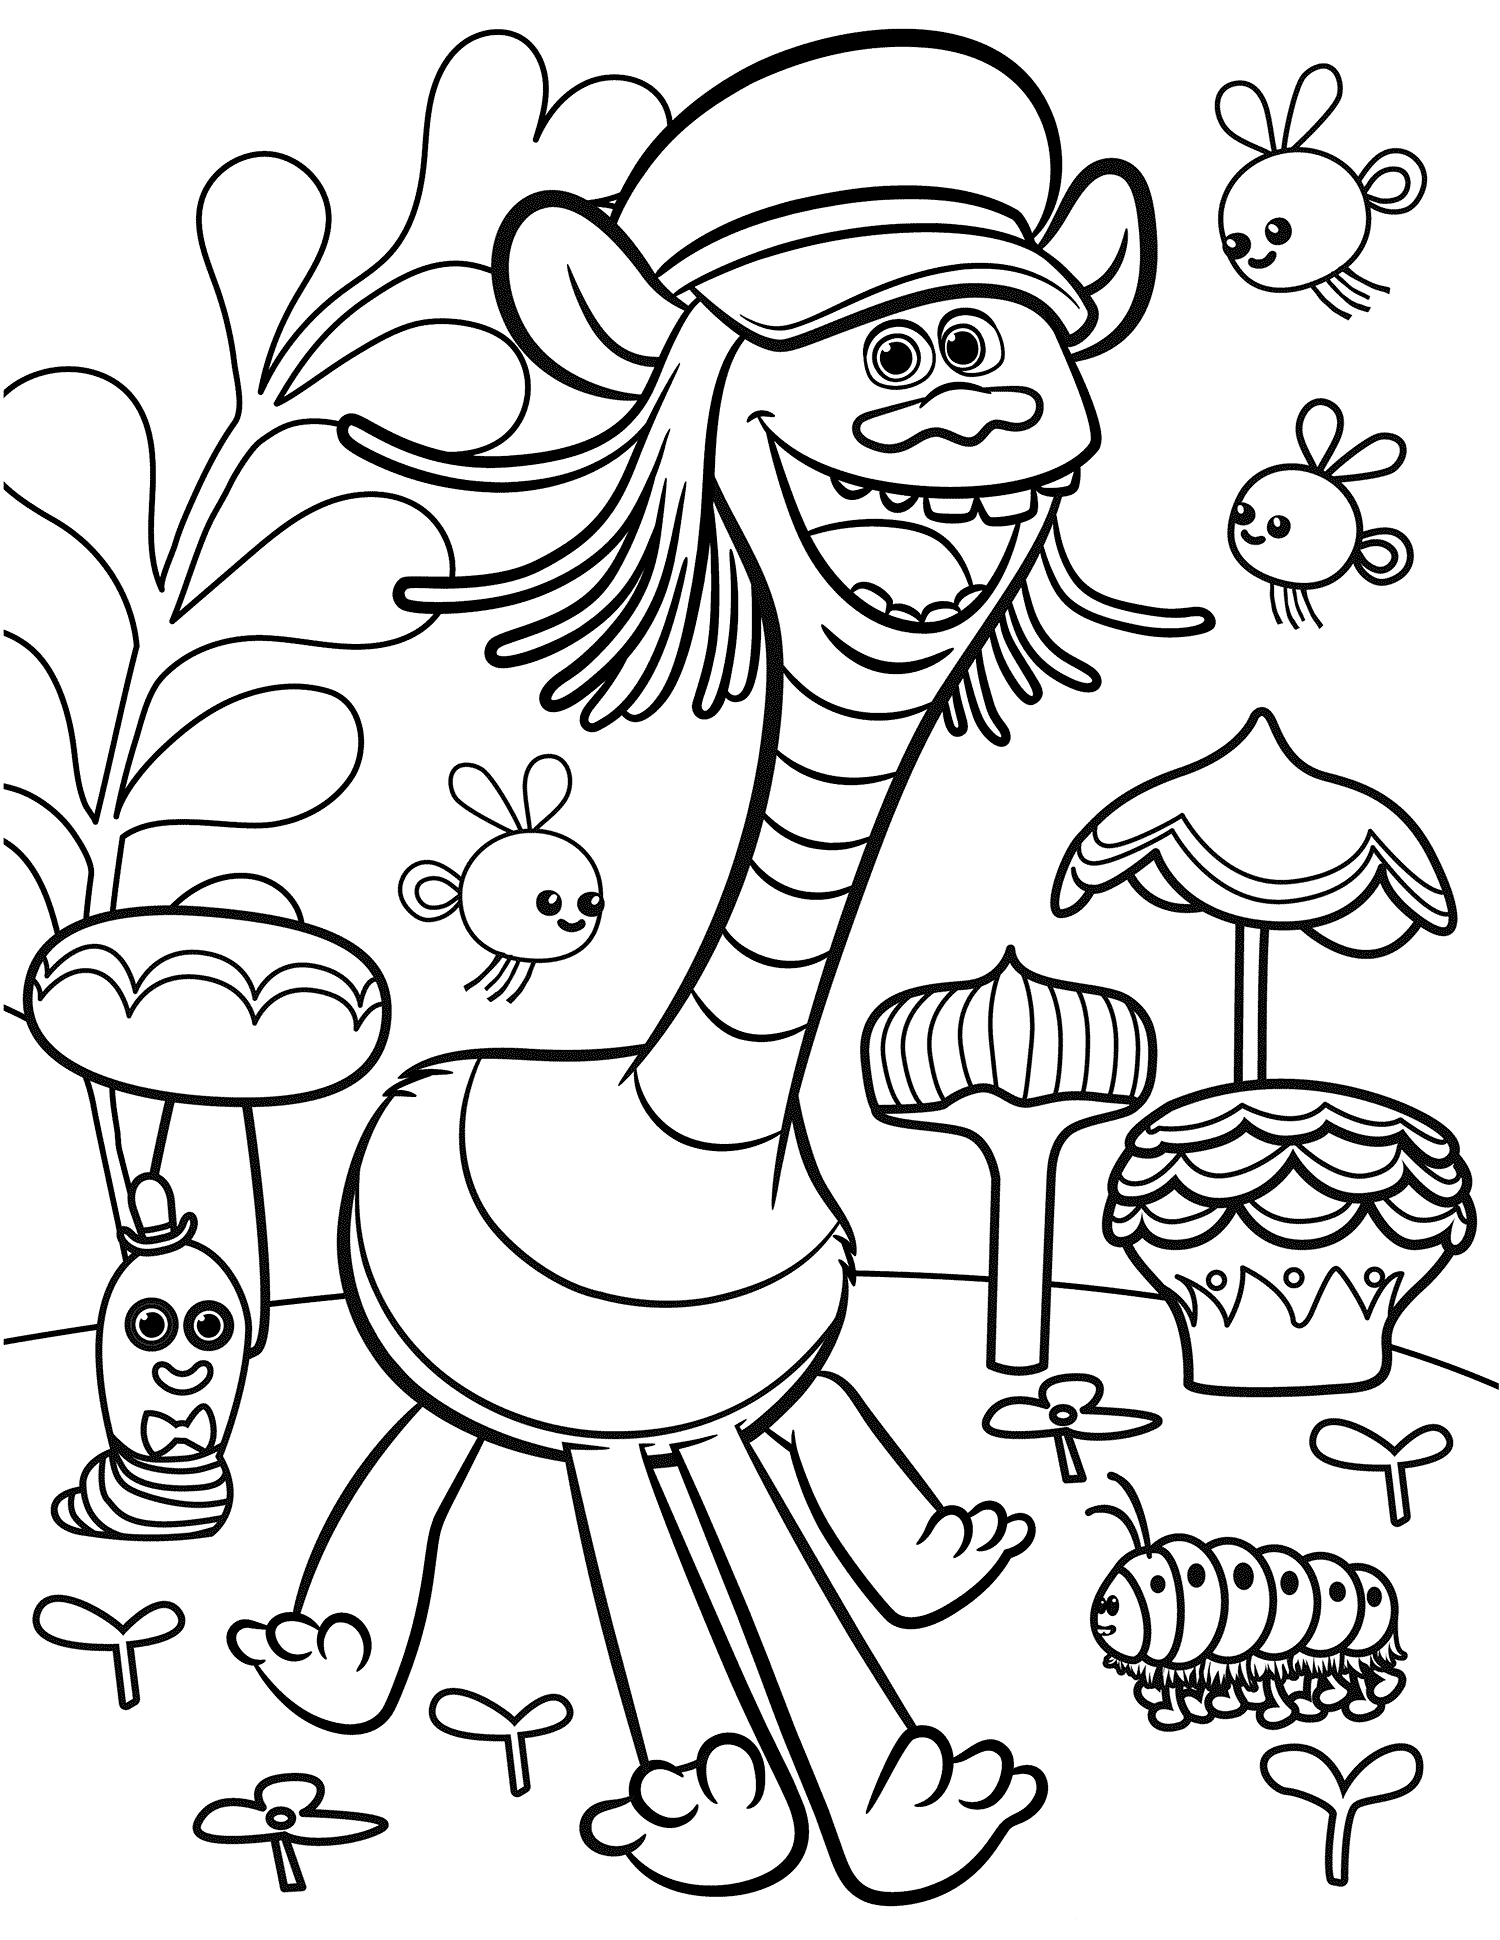 Trolls movie coloring pages best coloring pages for kids for Coloring book pages free